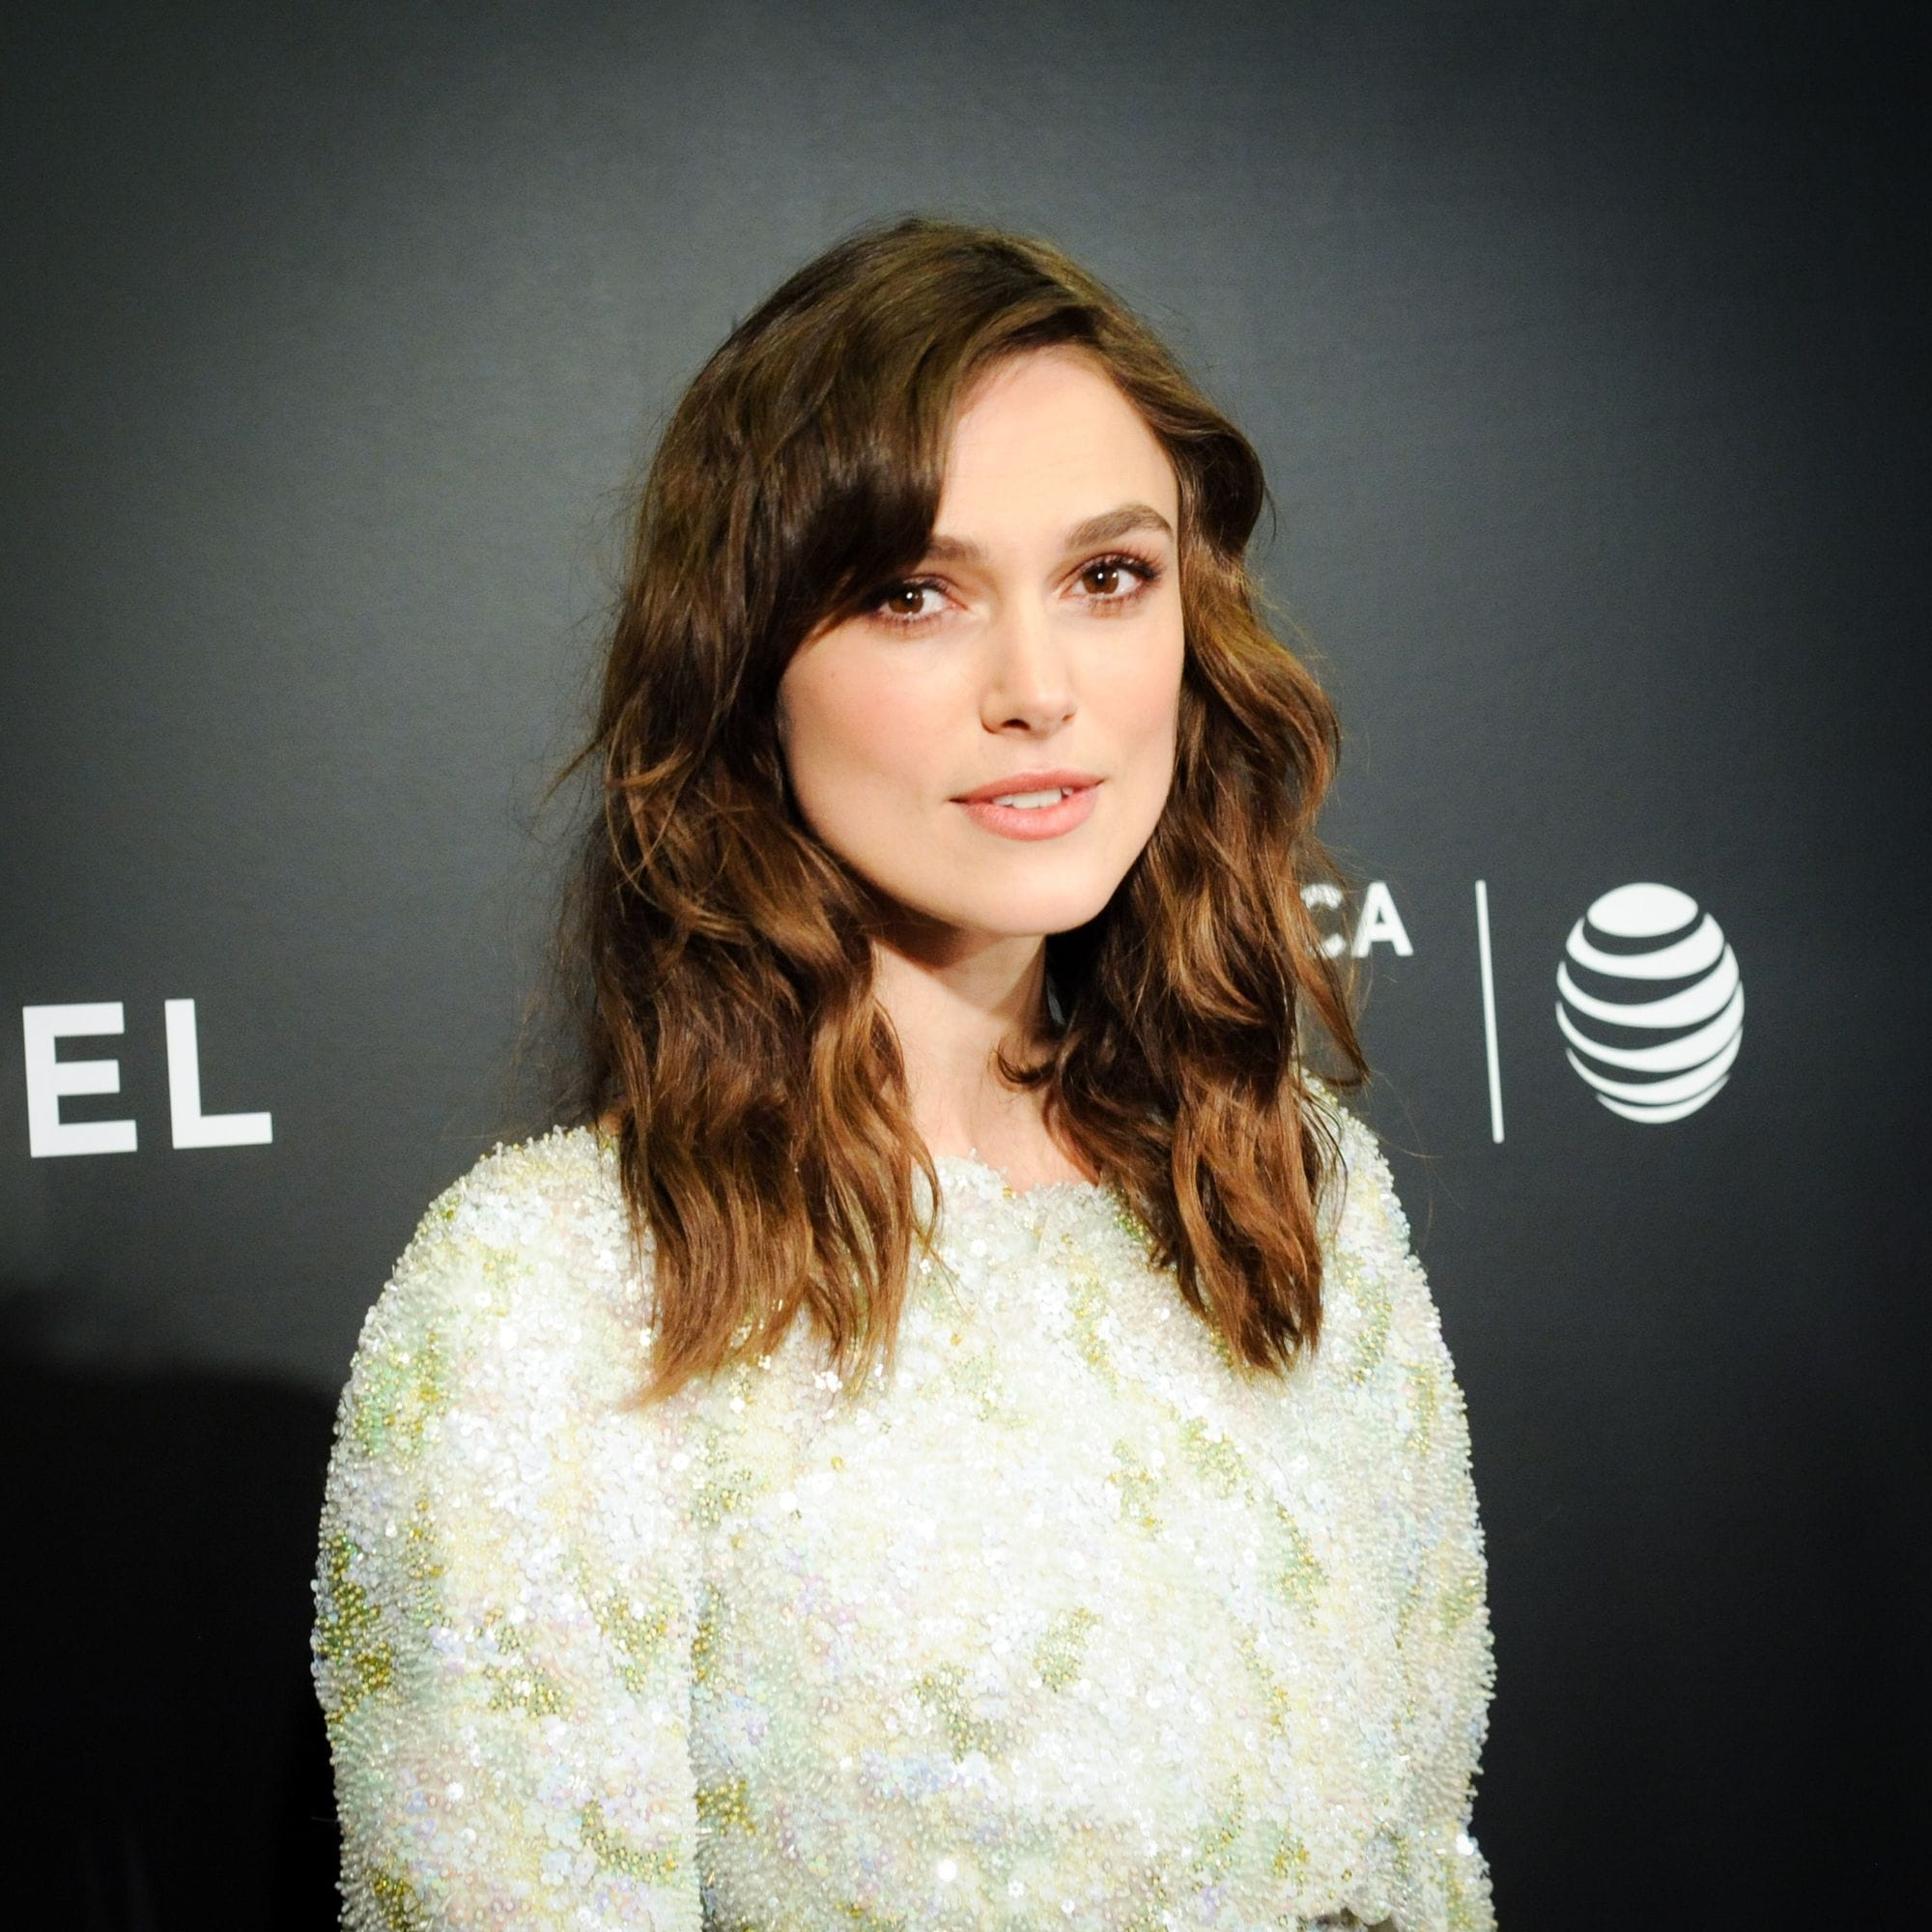 actress keira knightley with brunette tousled hair and a short side fringe